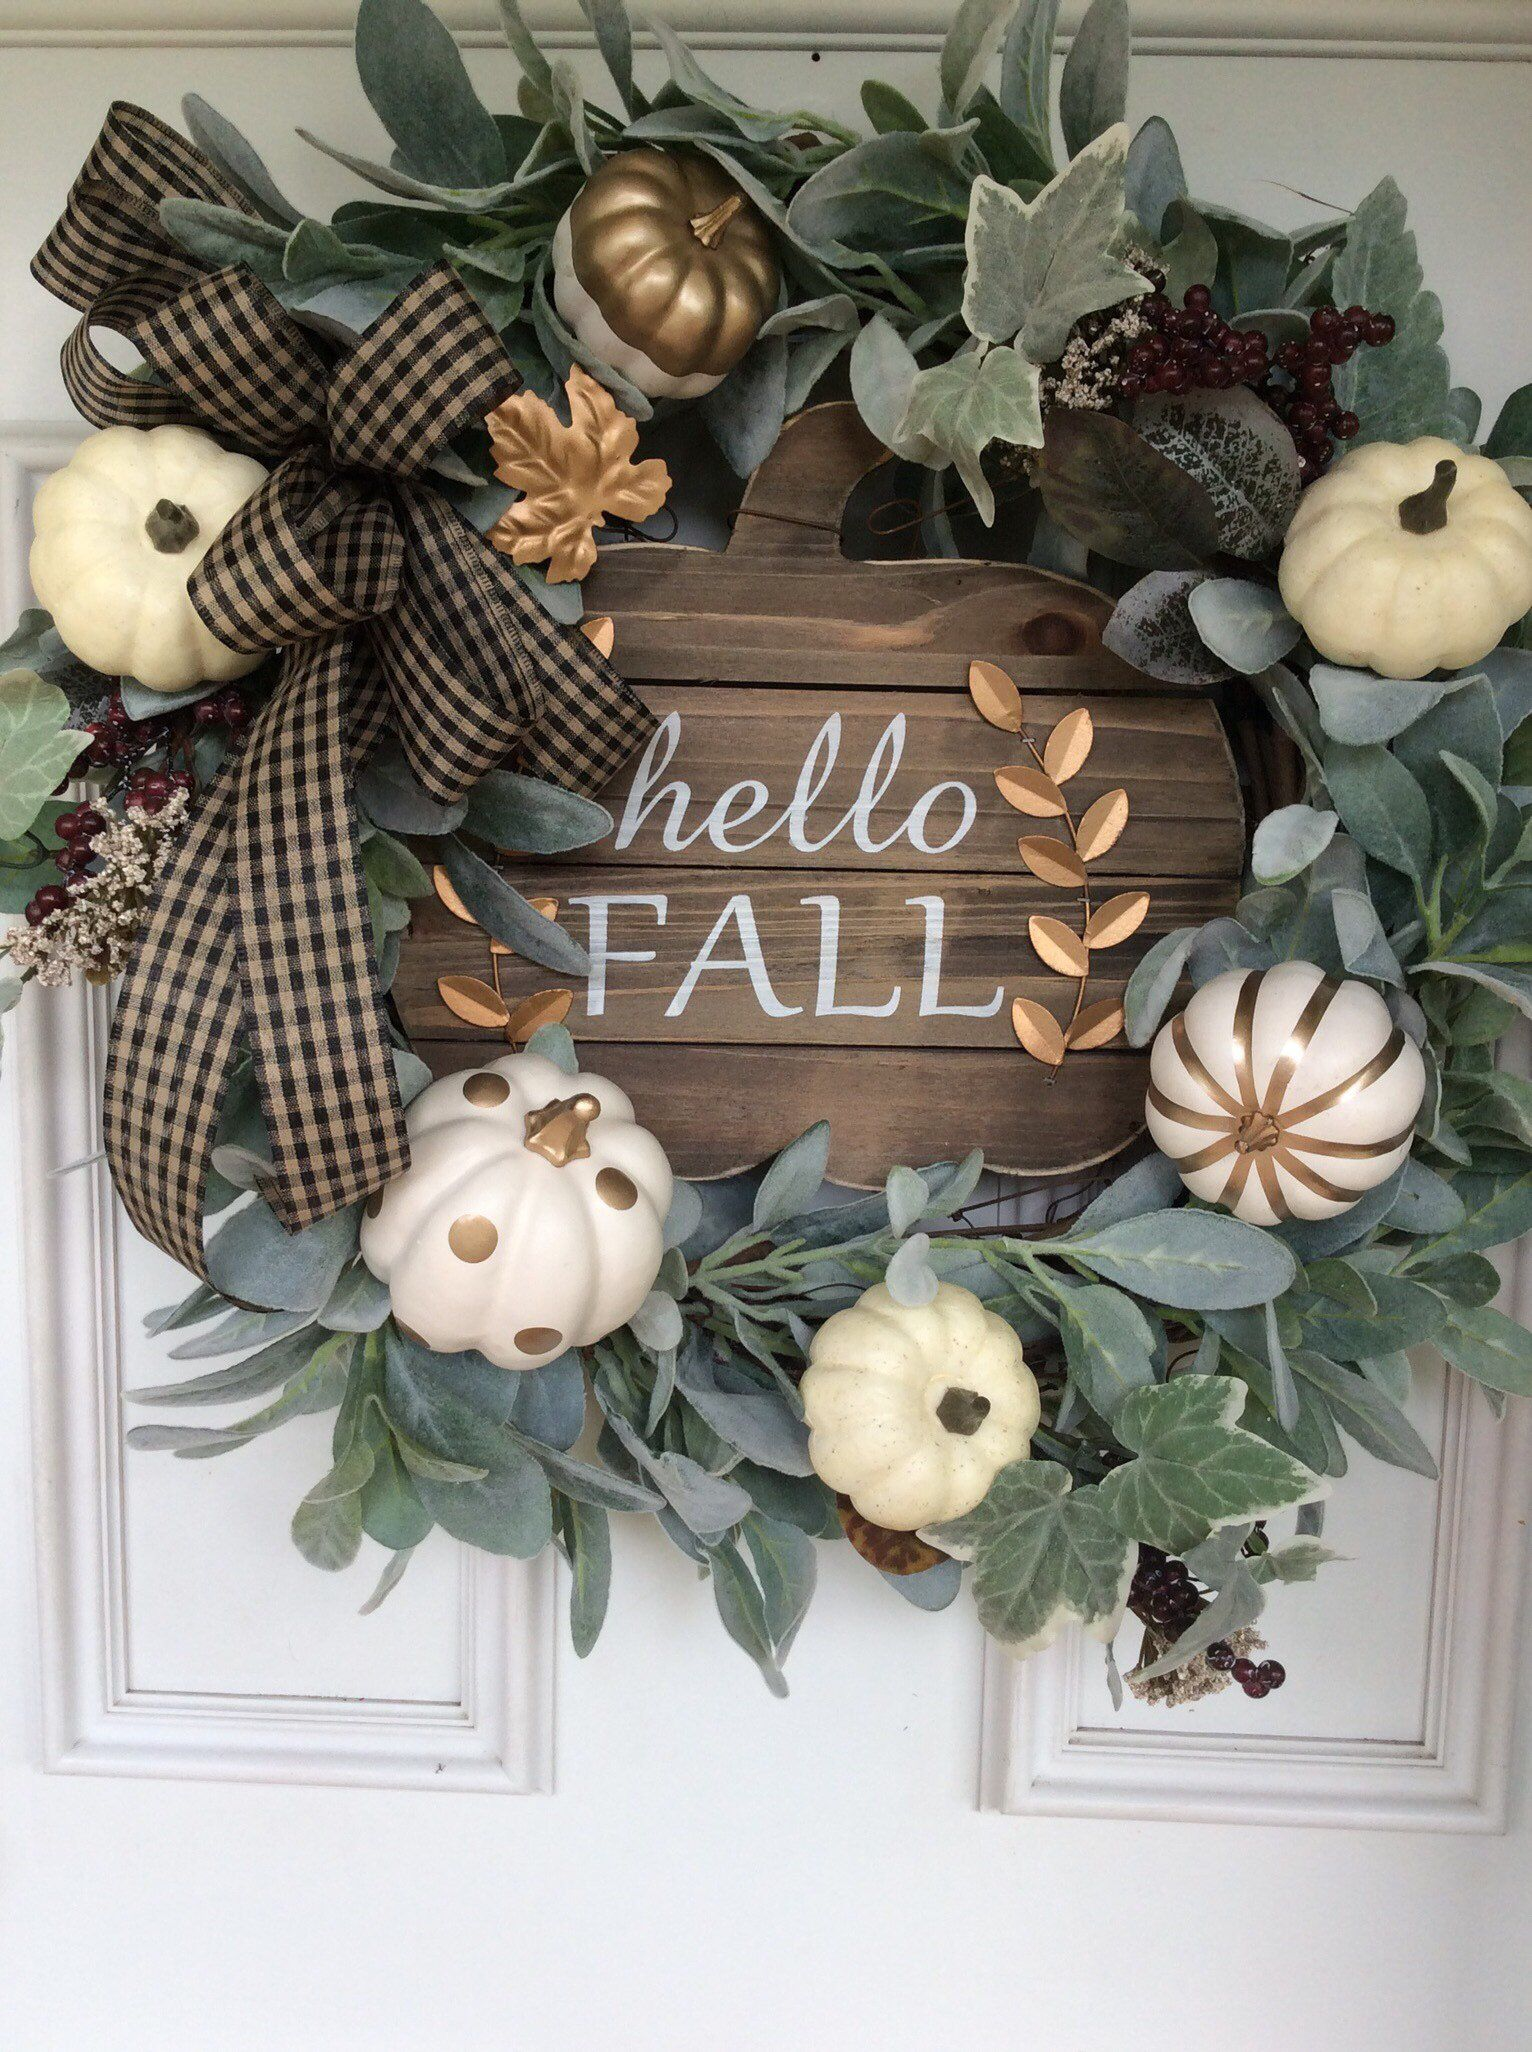 Hello fall, fall wreath, fall decor wreath, fall flowers, Thanksgiving wreath, lambs ear wreath, white pumpkin wreath, gold  white pumpkins #fallwreaths